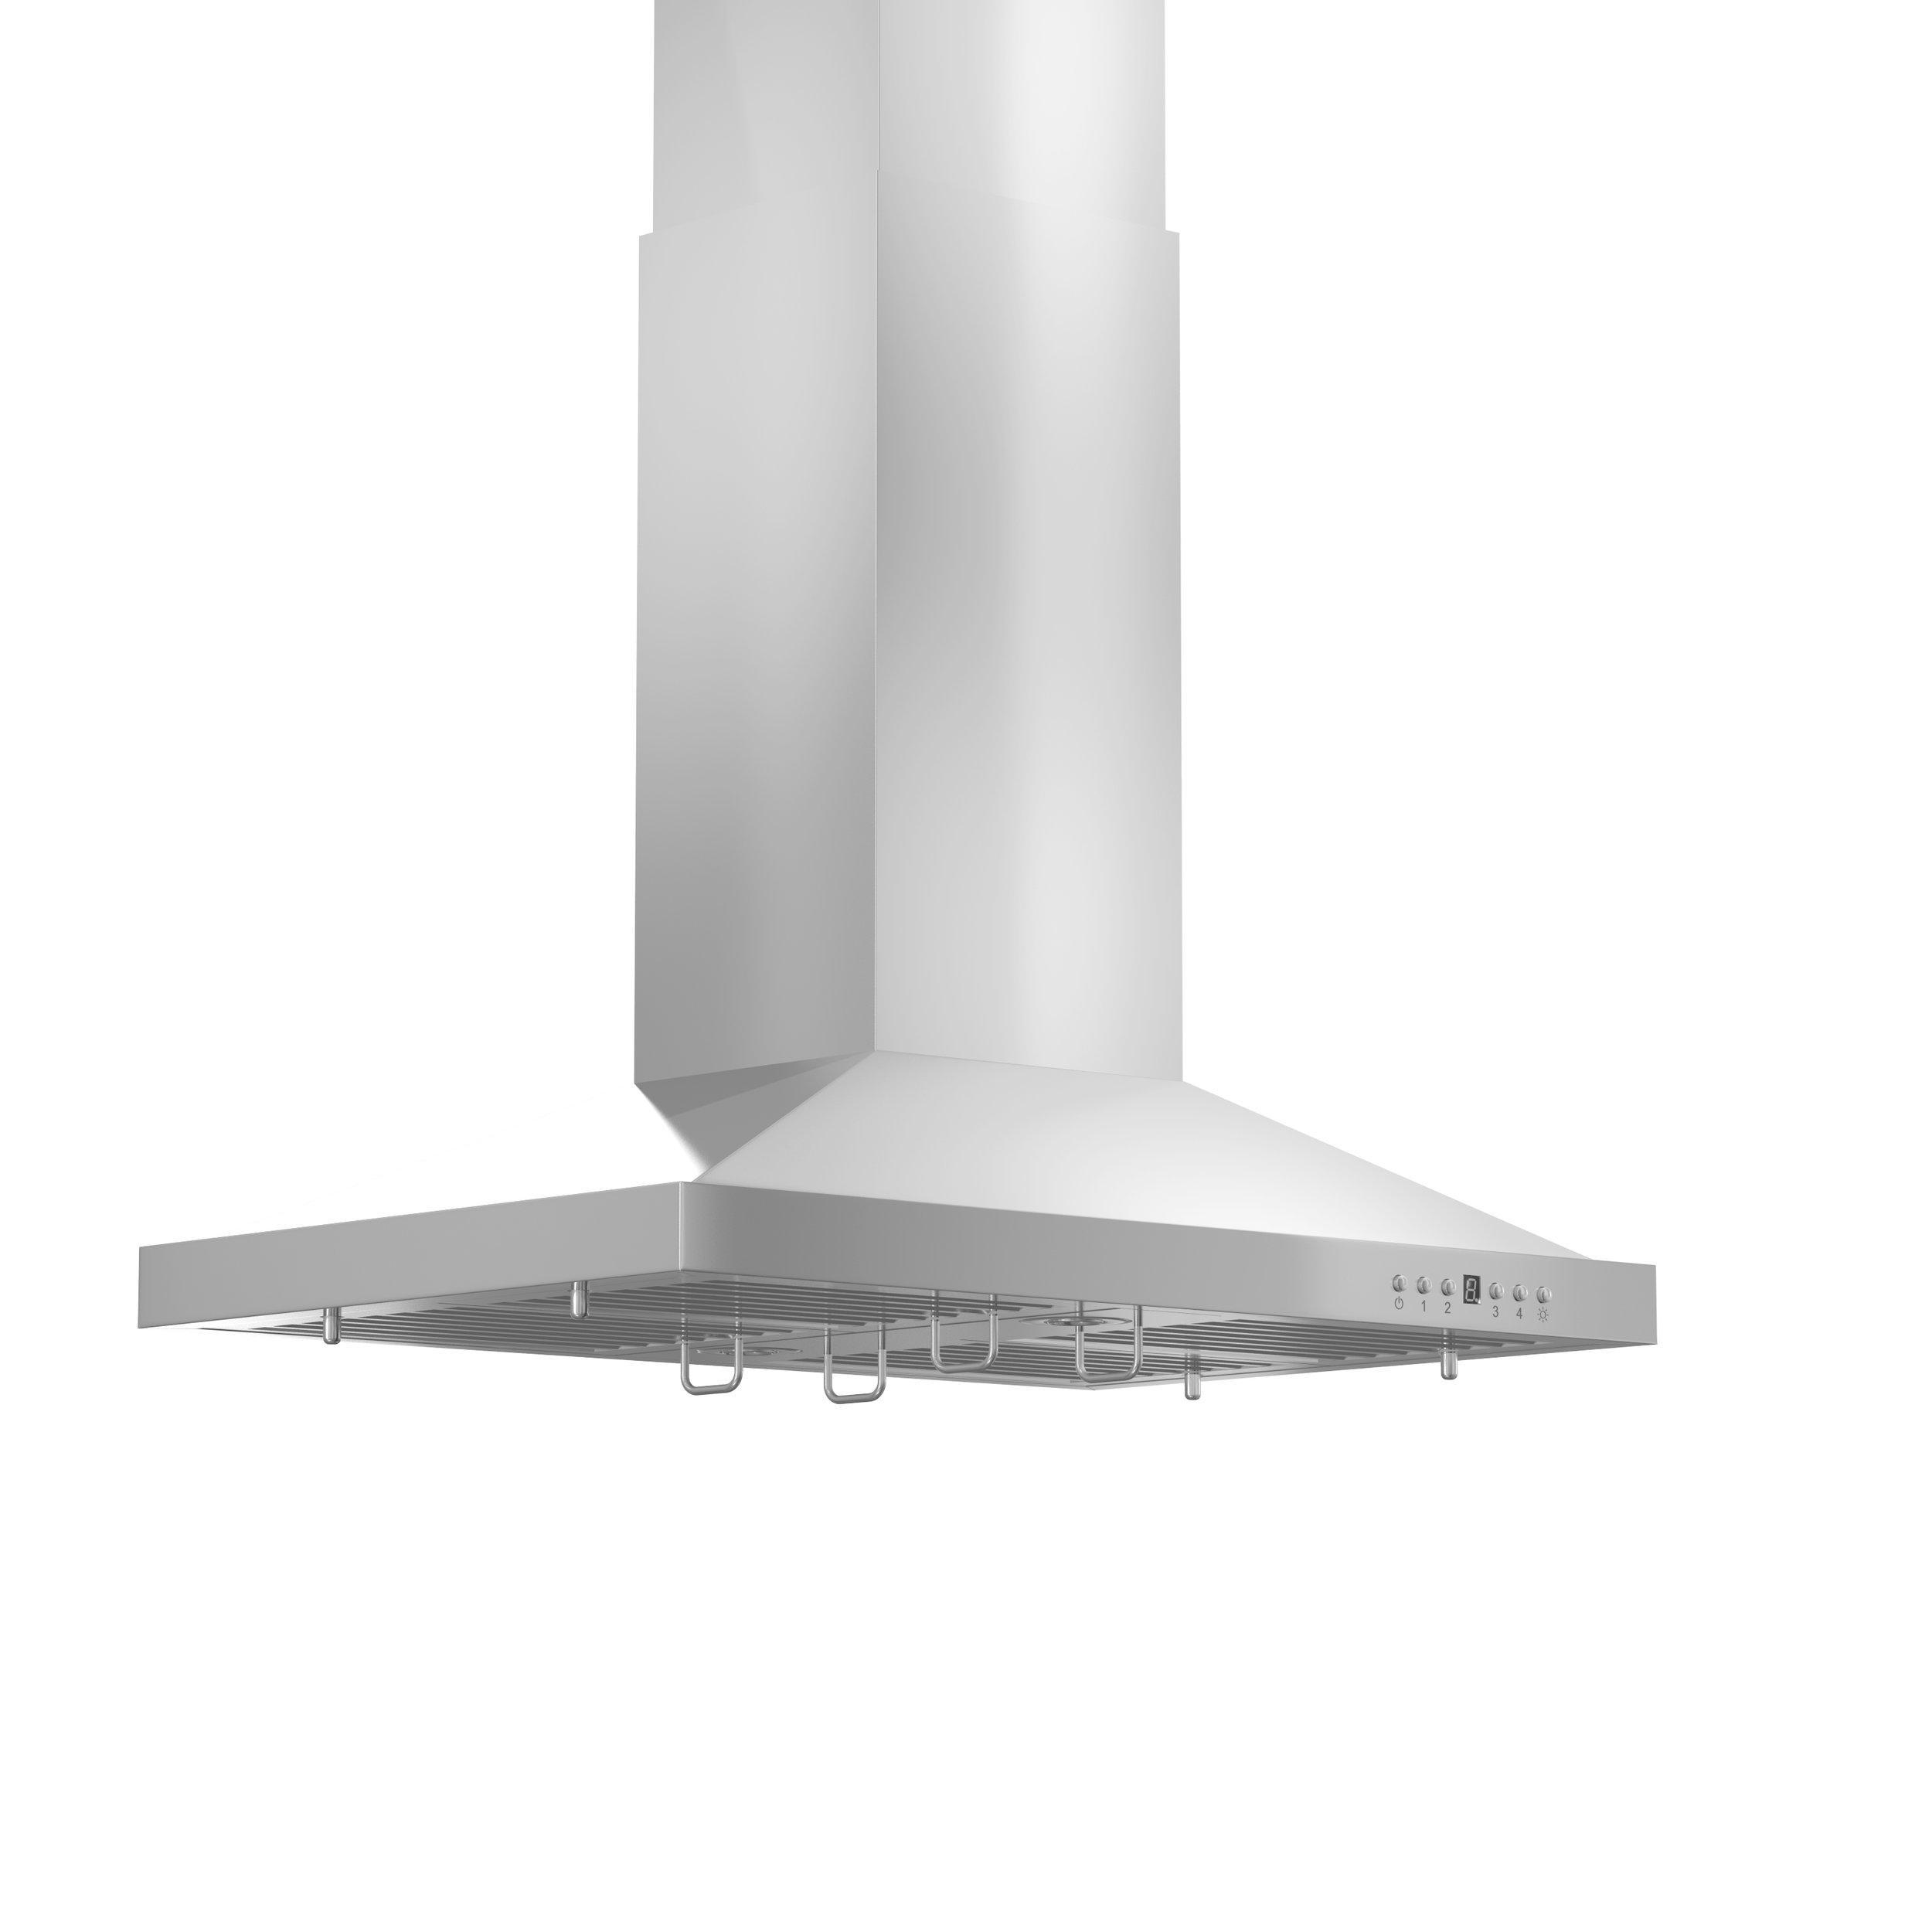 Ductless Stainless GL2i